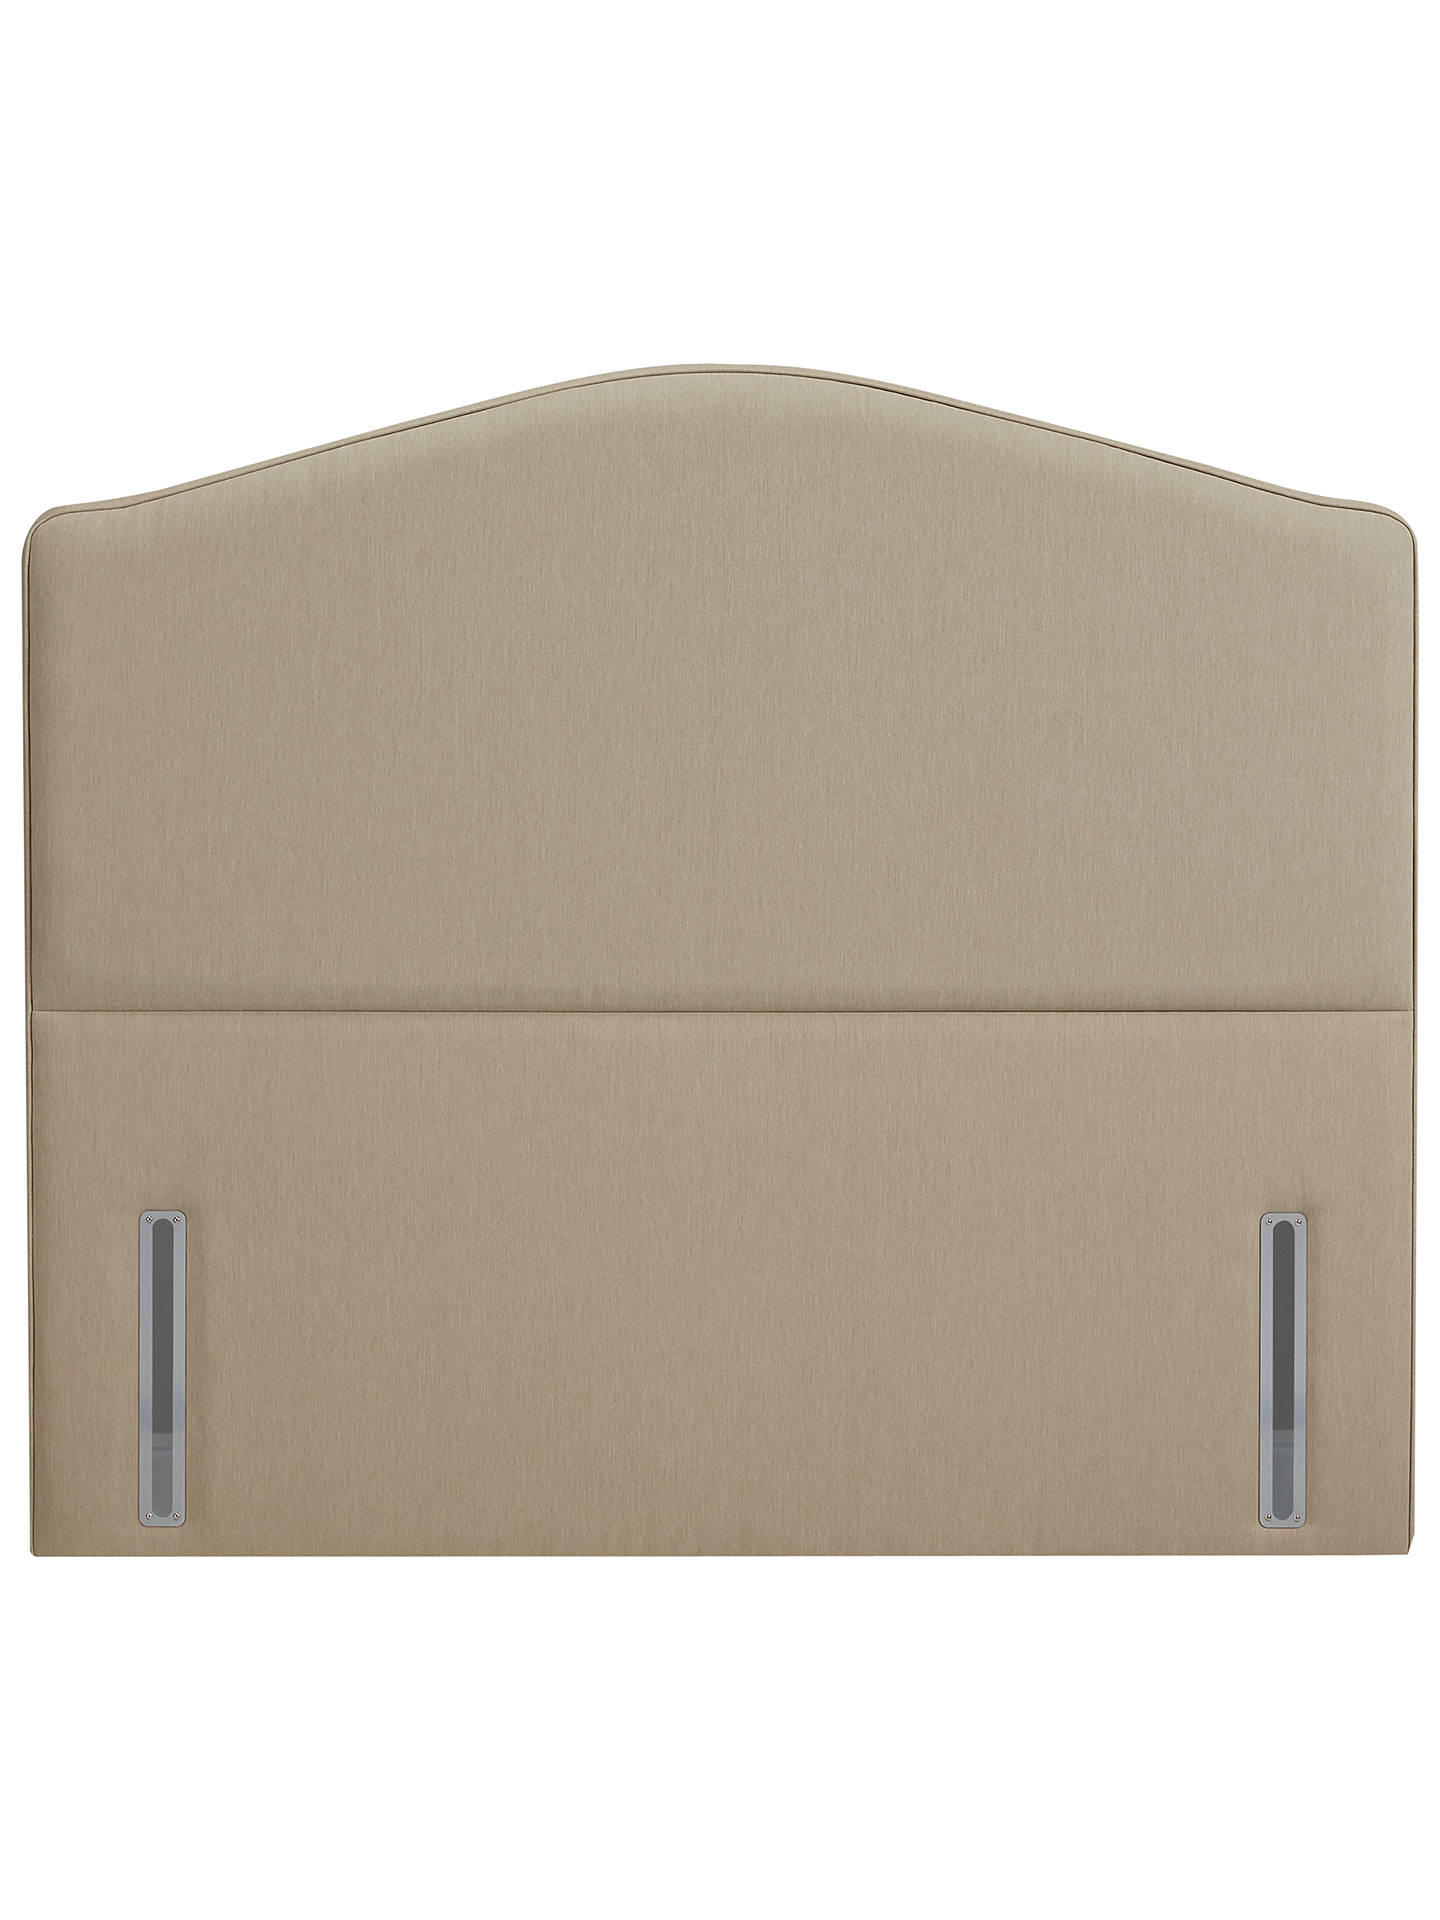 Buy John Lewis & Partners The Ultimate Collection Richmond Headboard, Pebble Canvas, King Size Online at johnlewis.com